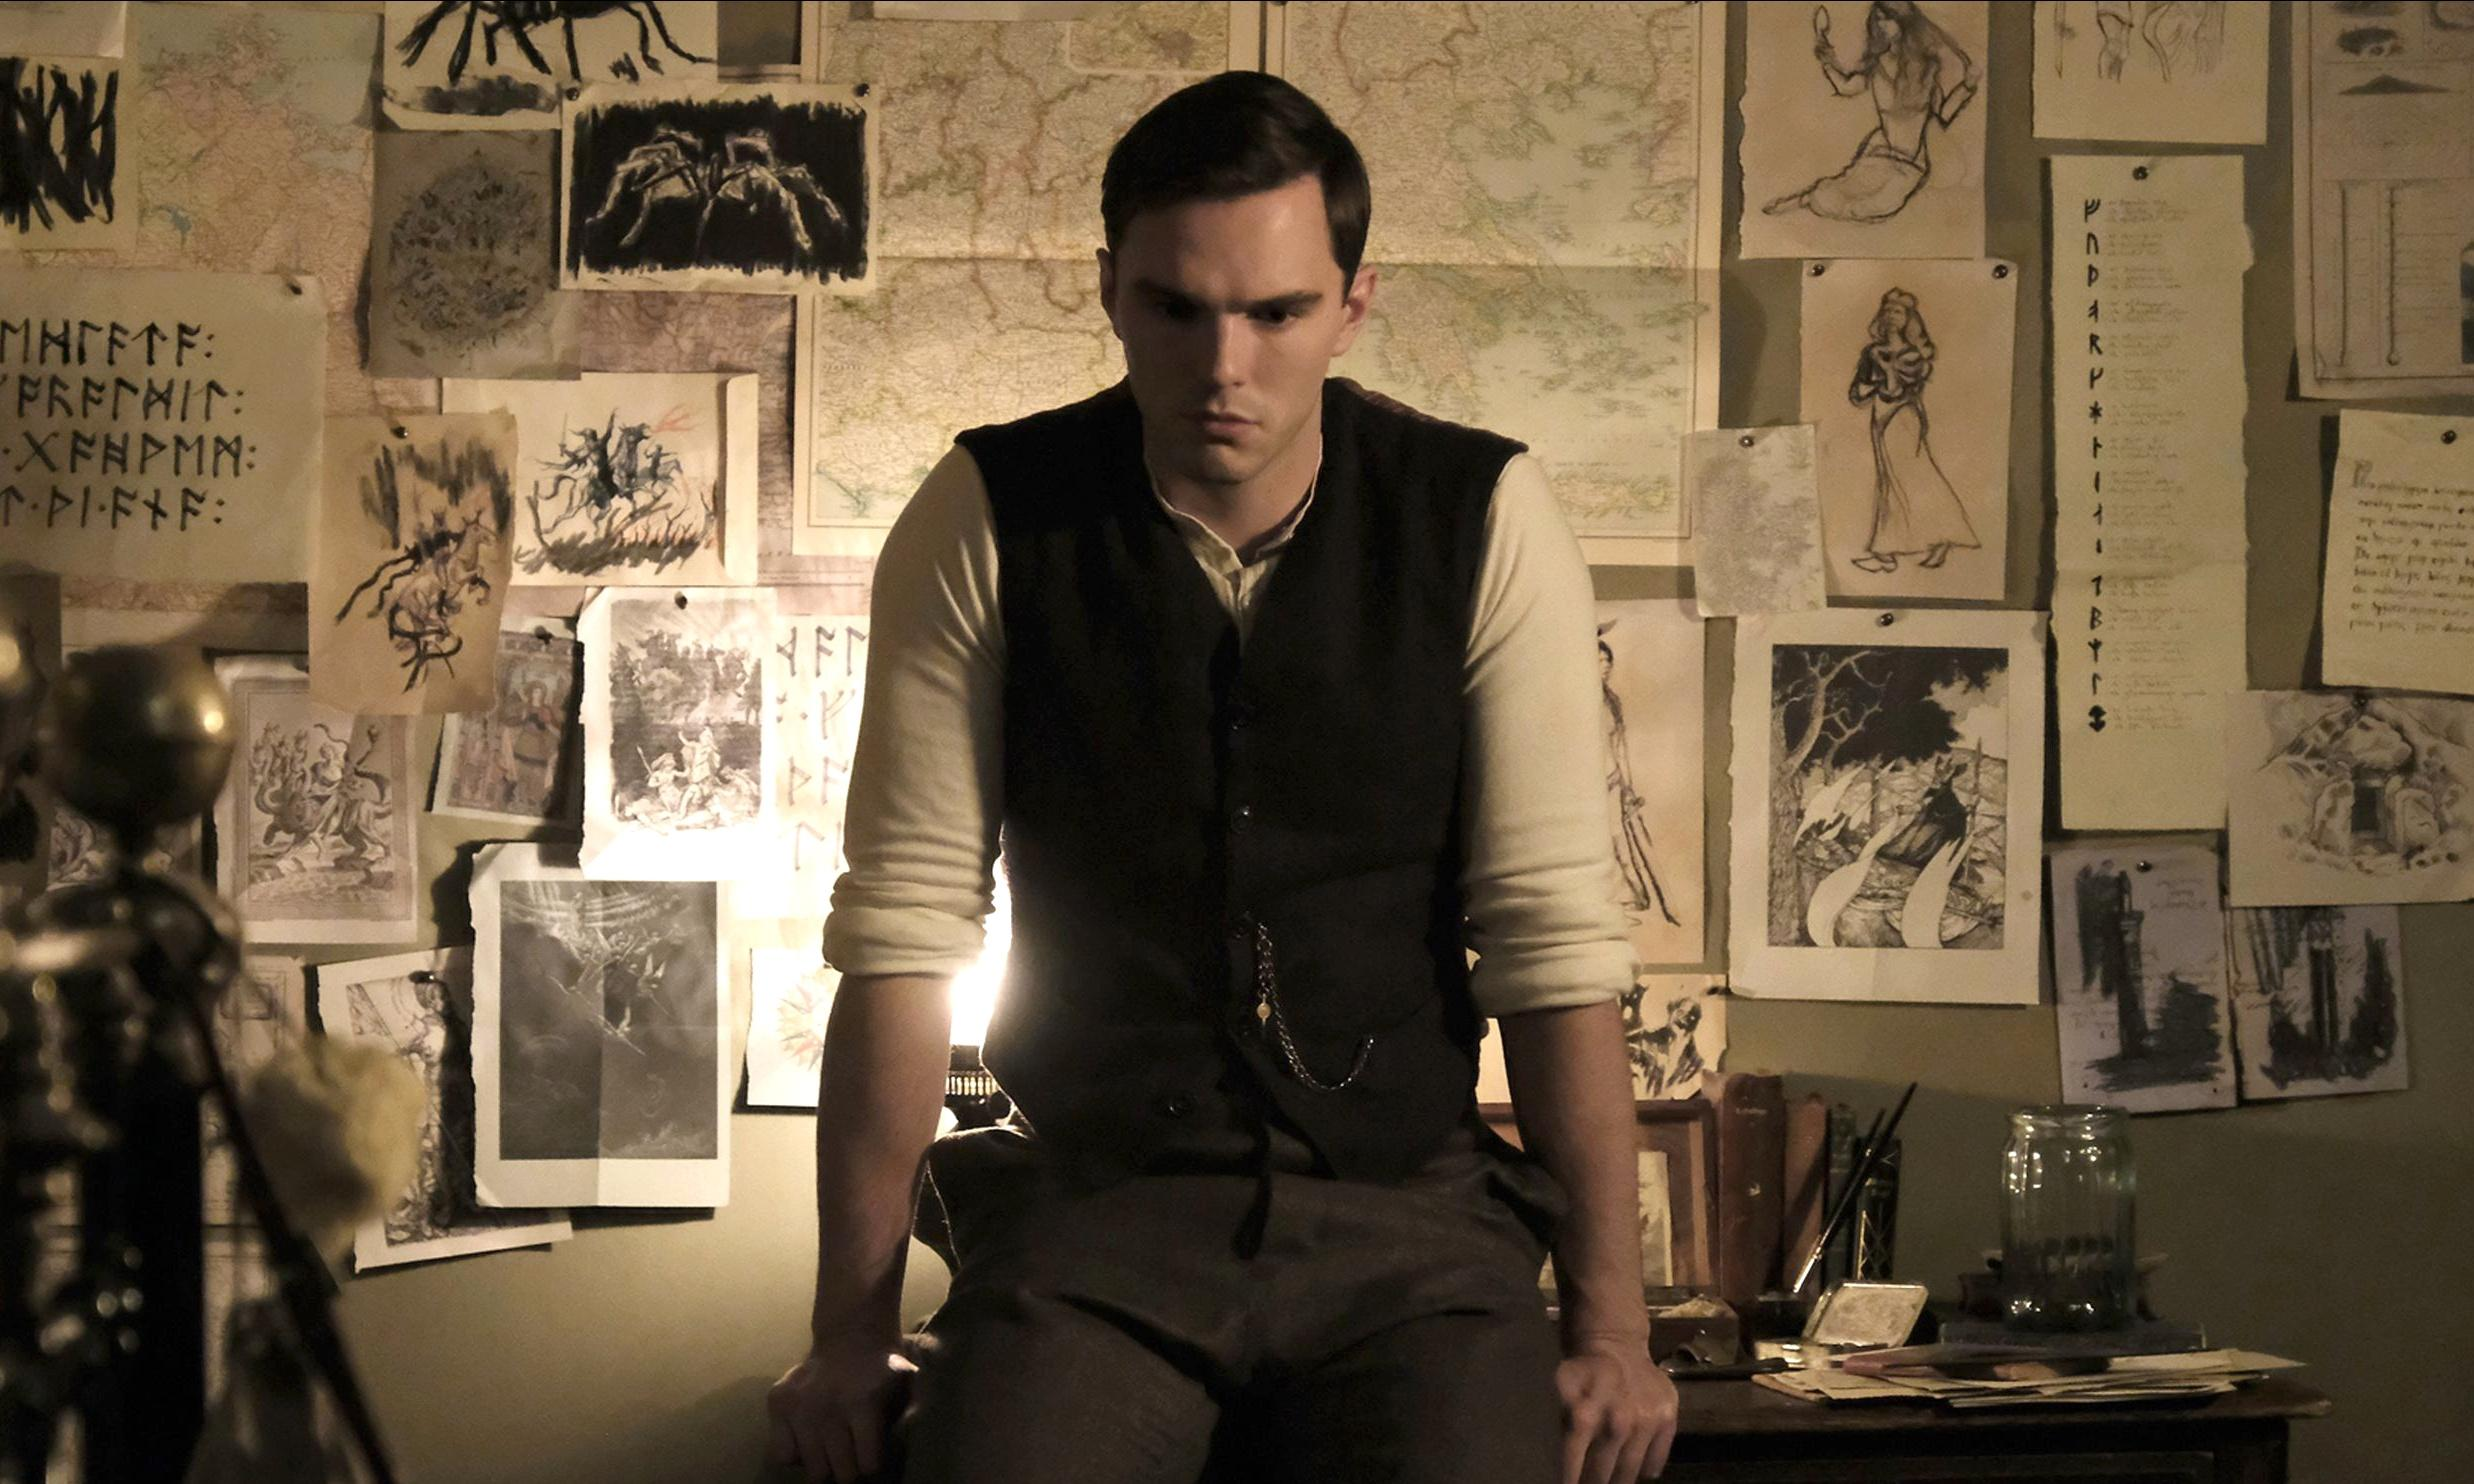 Tolkien film-makers insist they were respectful after estate disavows biopic